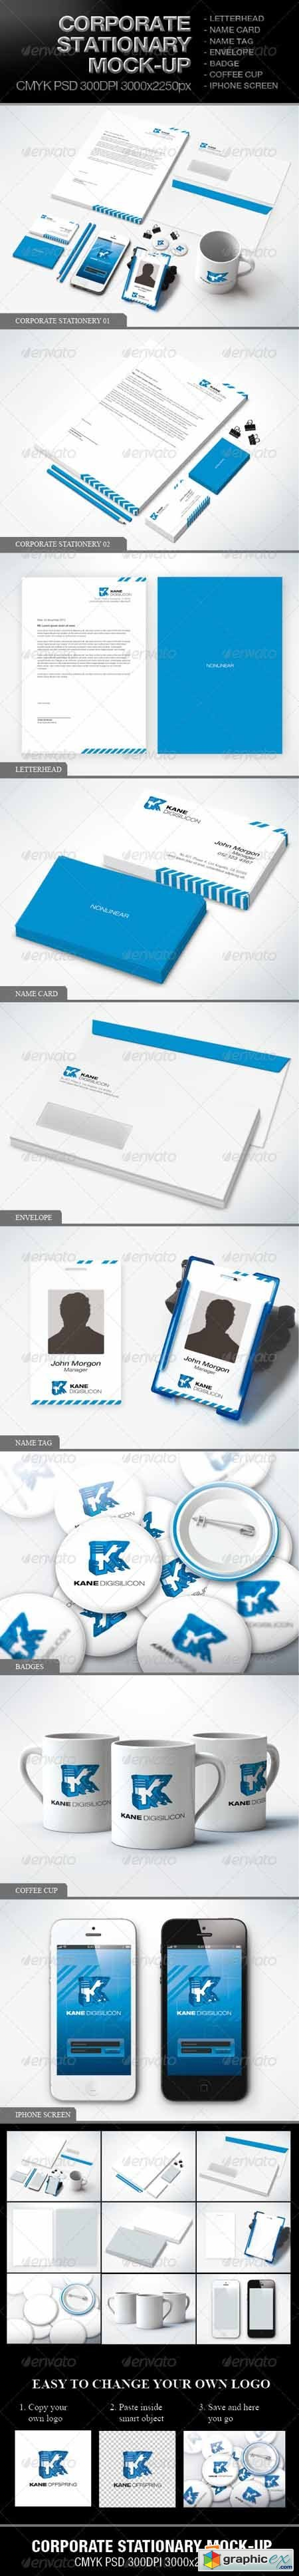 Corporate Stationary Mock-up 3885546